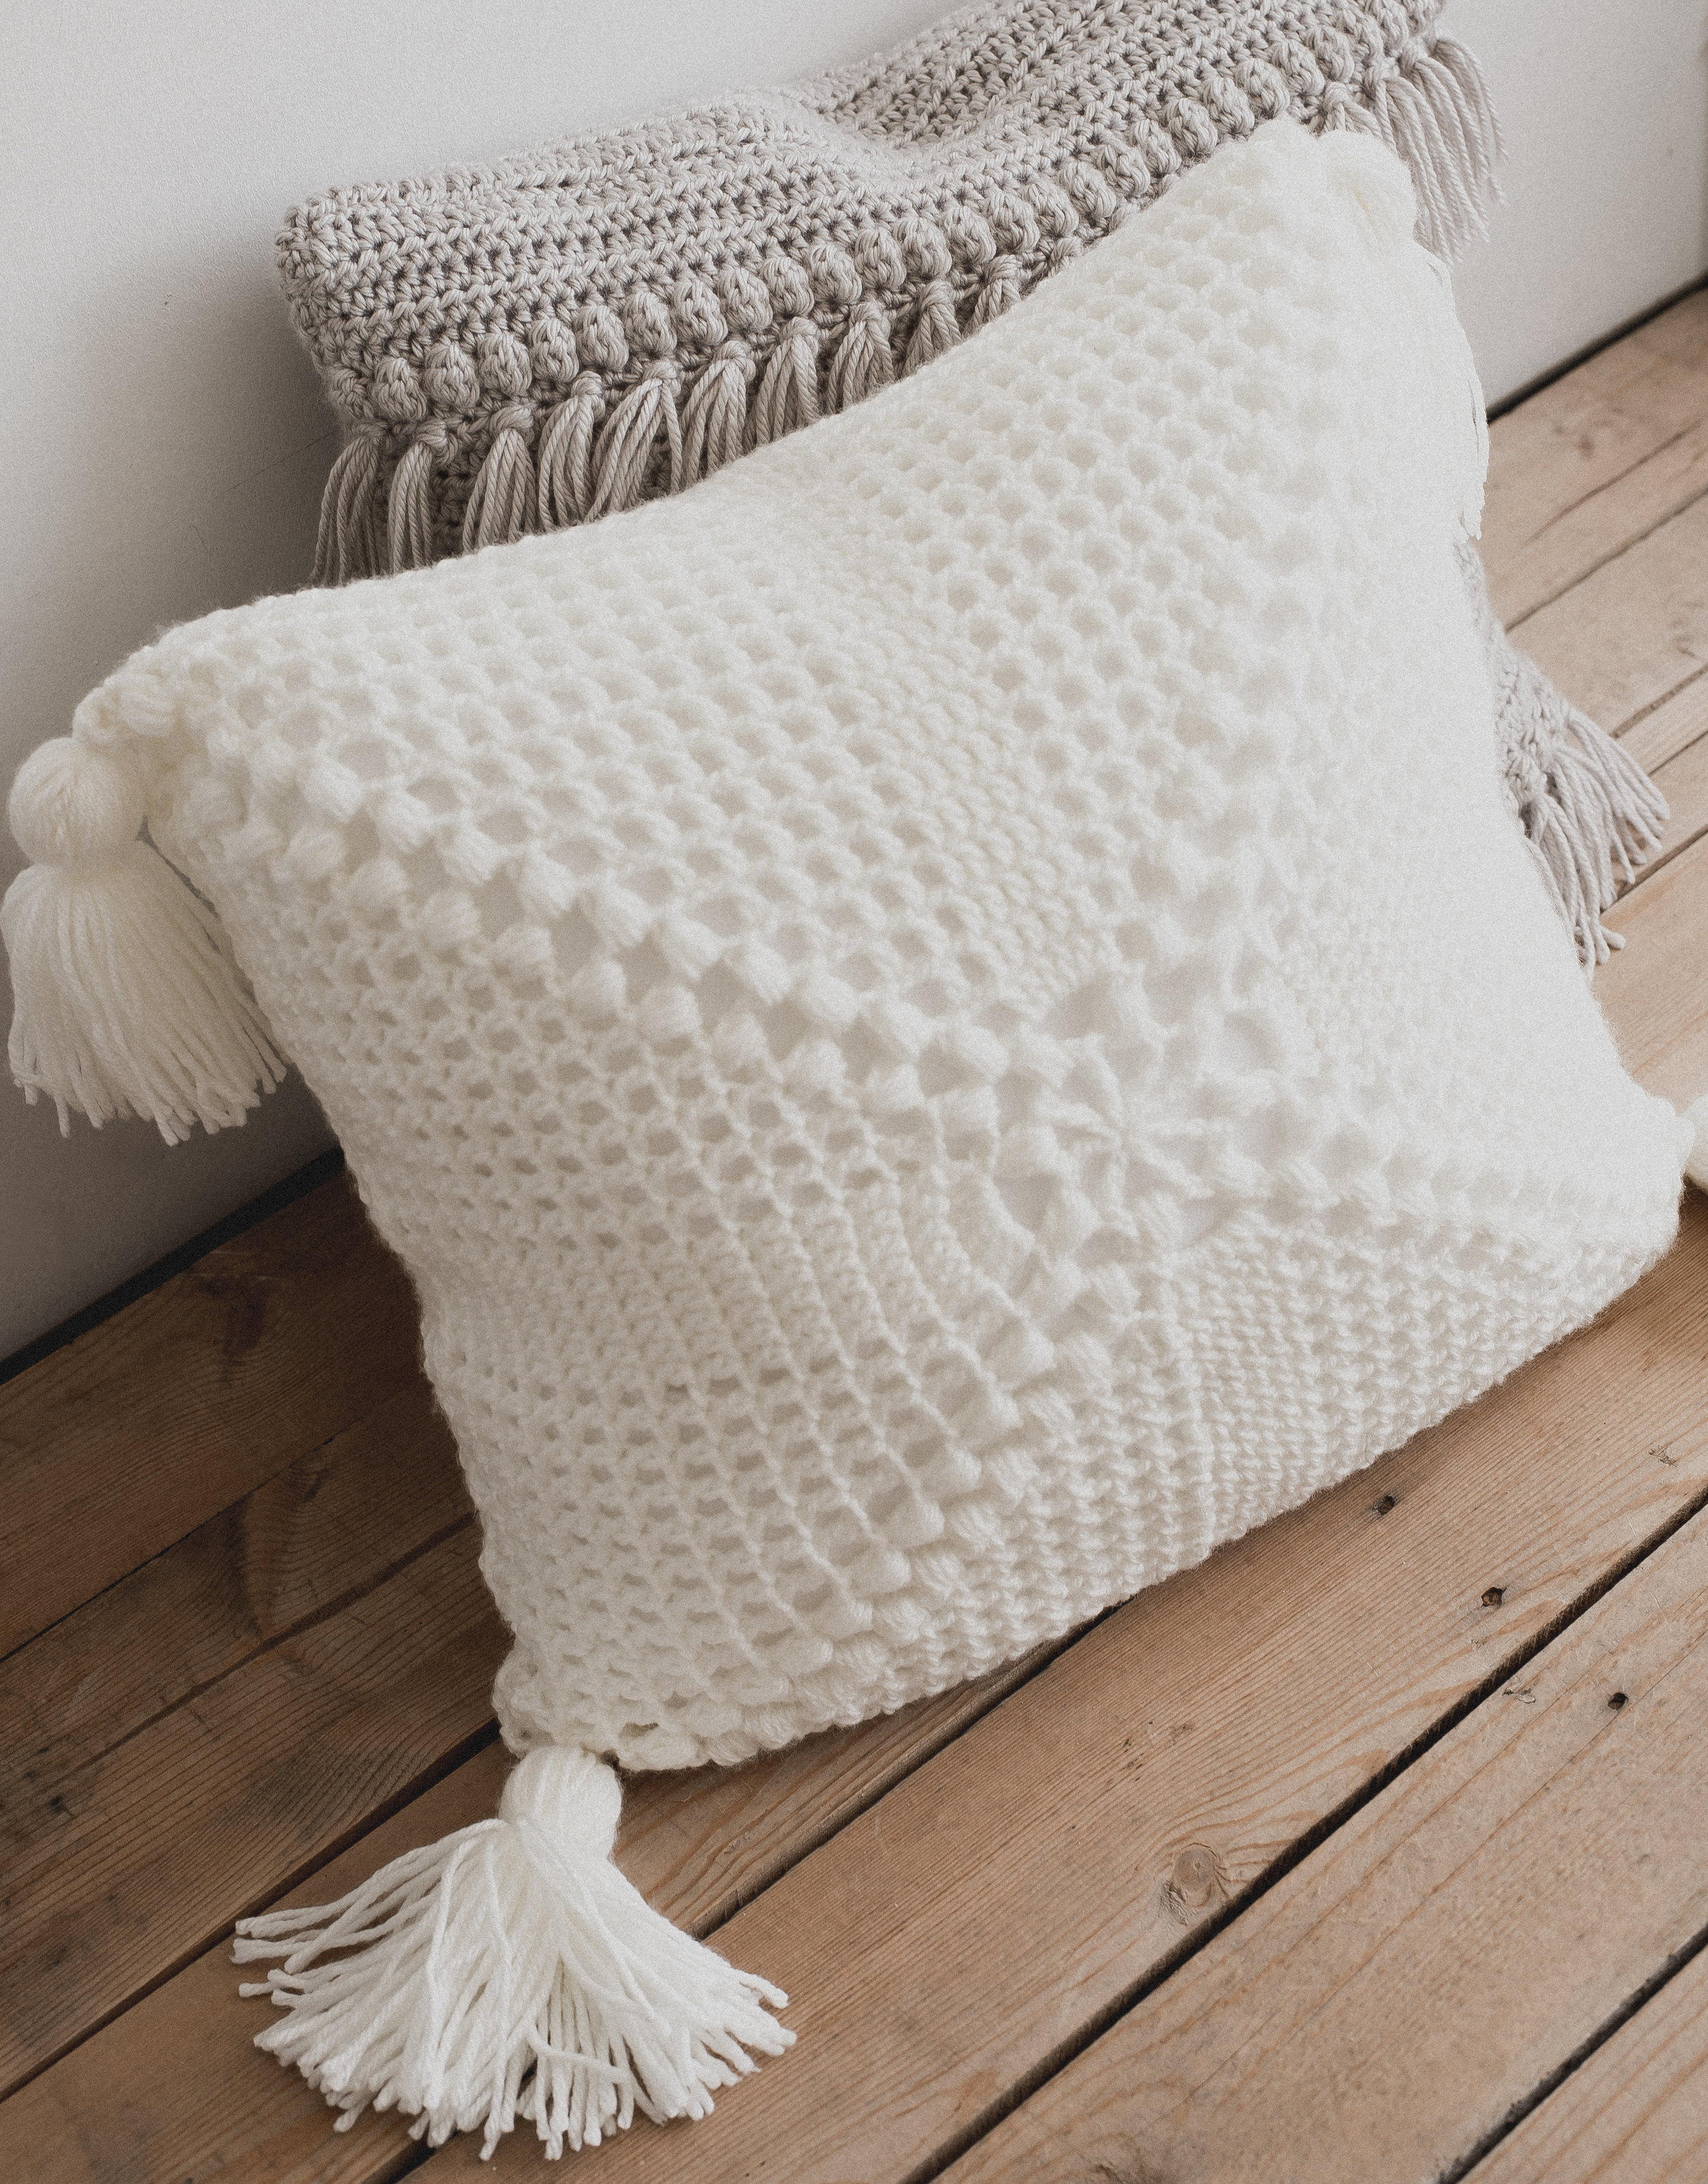 Free Crochet Pattern for the Crochet Cottage Pillow - Megmade with Love